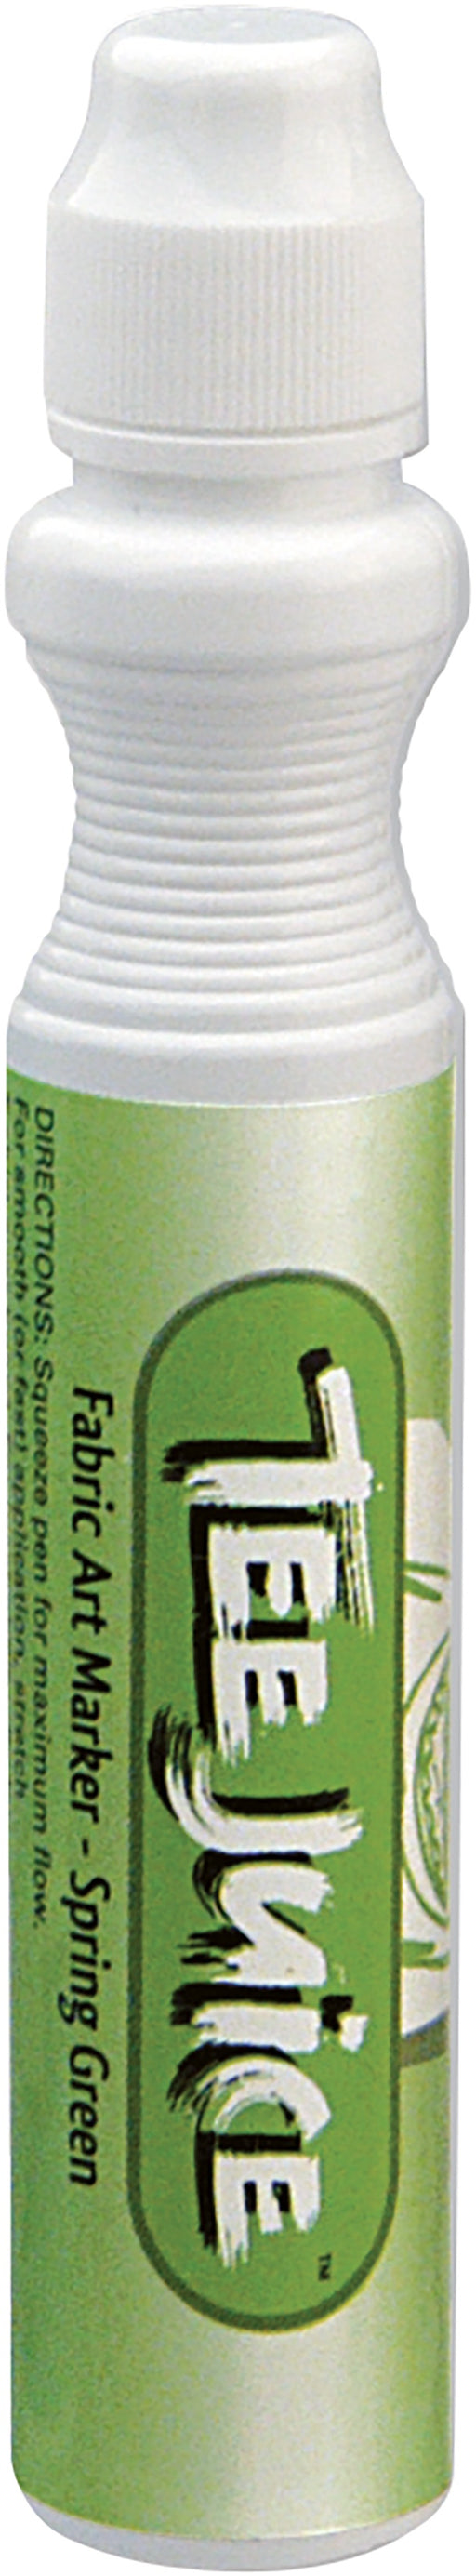 Jacquard Tee Juice Broad Point Fabric Marker Spring Green